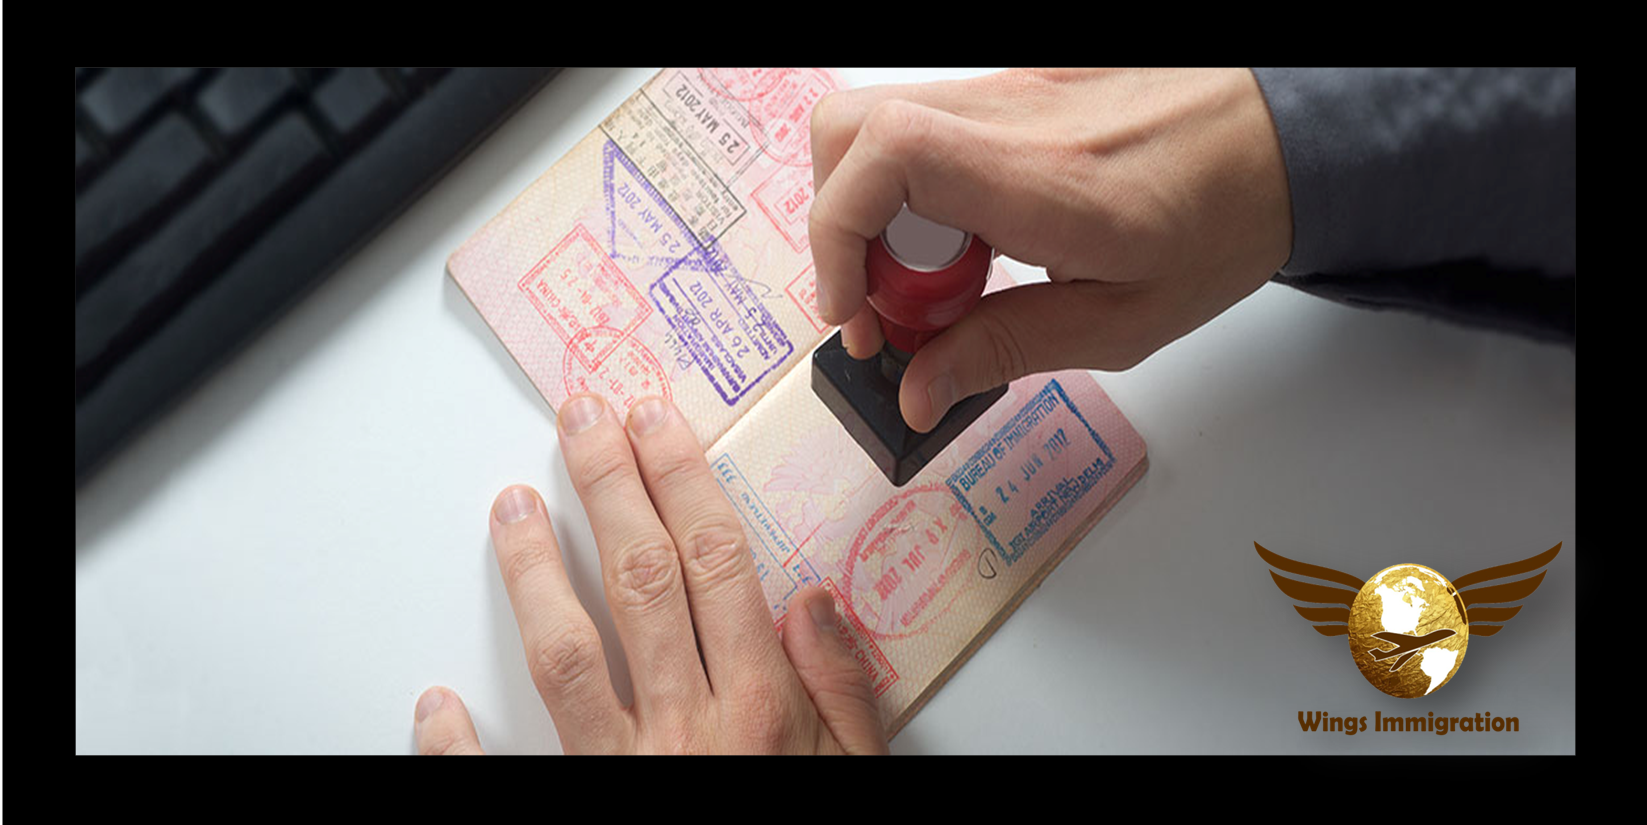 Wings Immigration Visa Services Wings, Cards, Playing